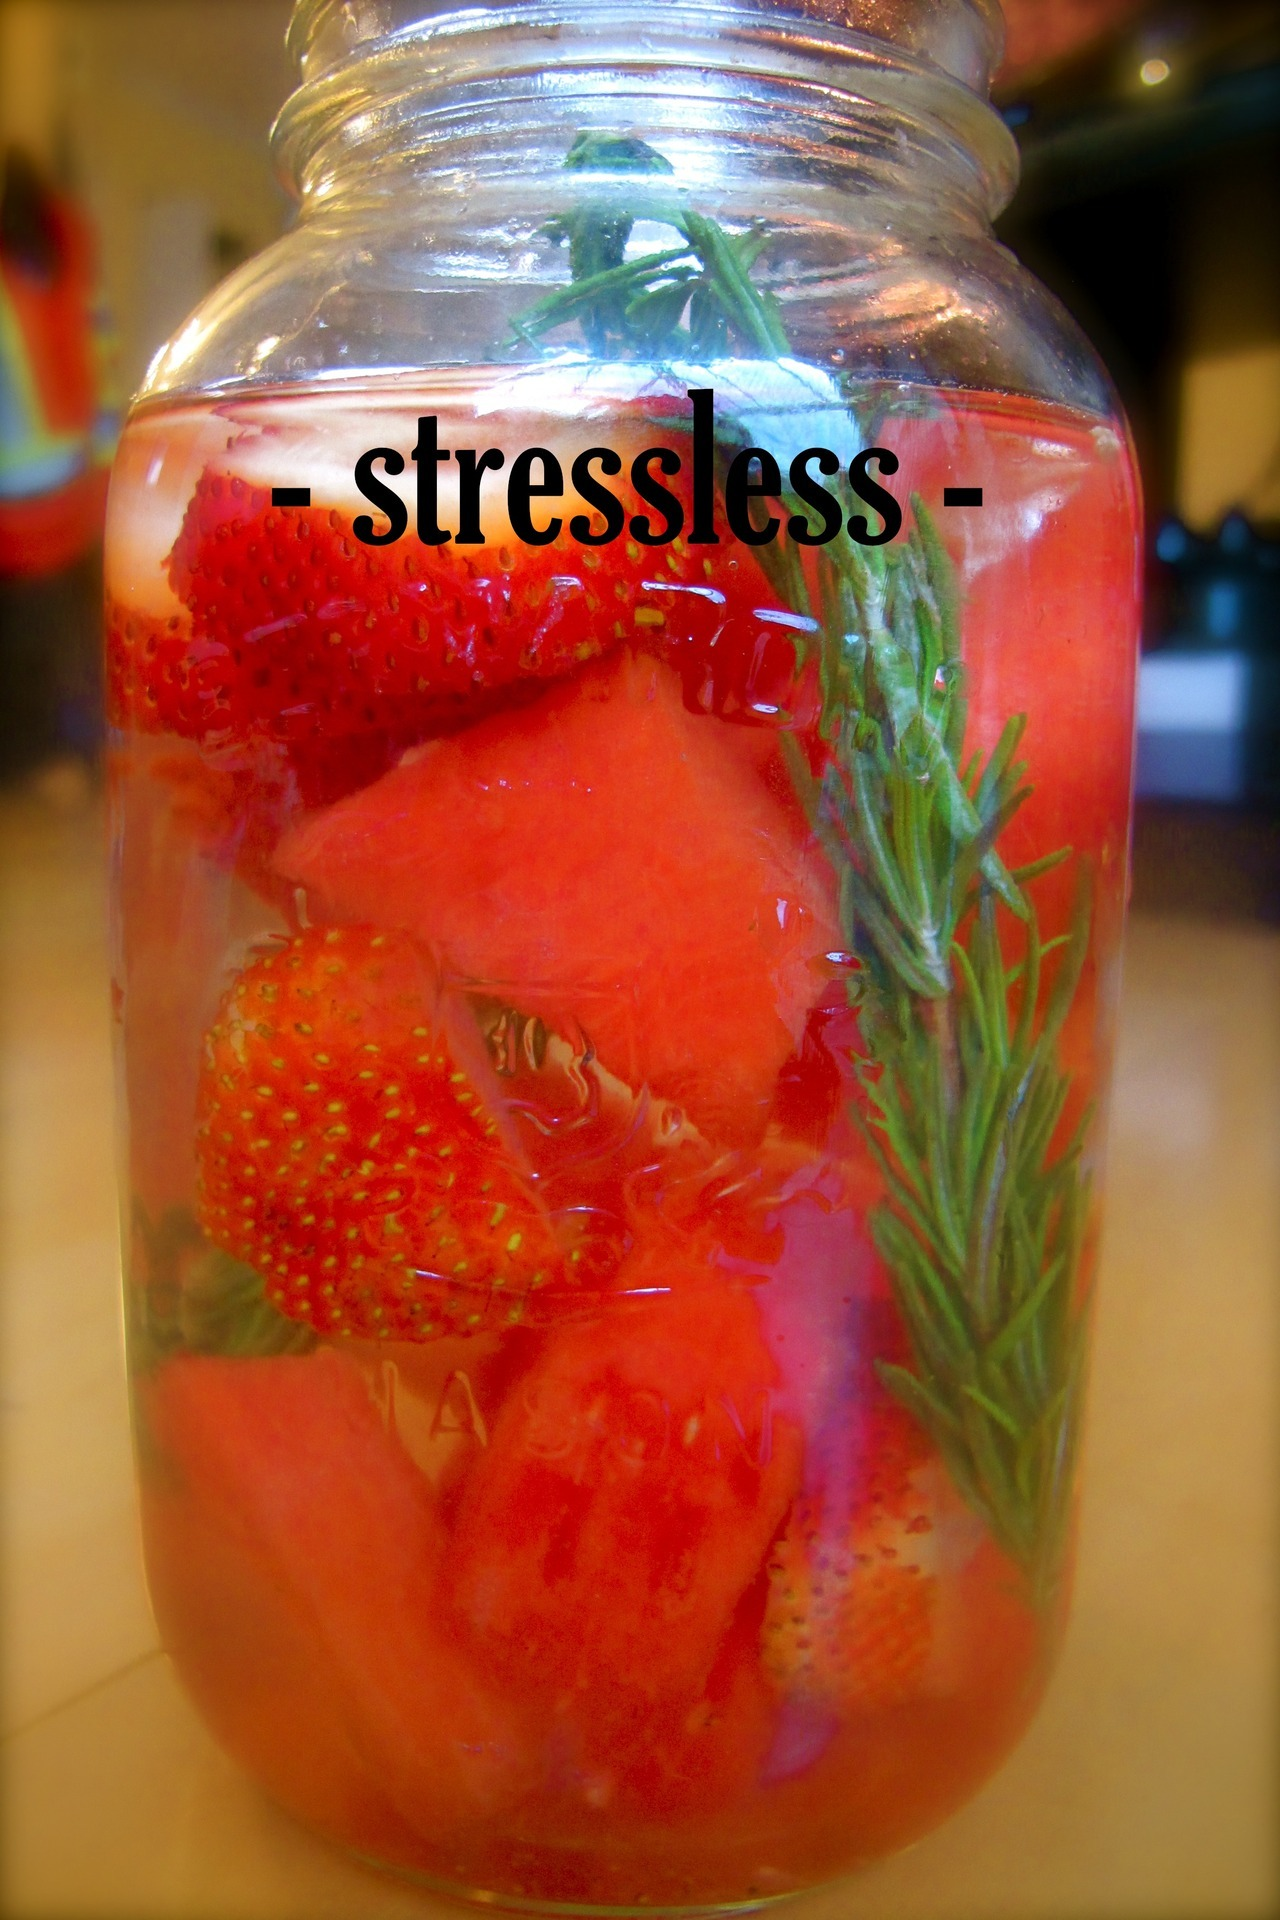 skyevictoriano:  Make Your Own Alkaline Vitamin Water Find yourself needing a vitamin boost?   Click here, for complete recipe and directions of my five signature colour-free, sugar-free and bpa plastic free alkaline vitamin waters or get inspired to make your own combinations.   Recovery - This vitamin water is ideal for recovery post-workout or after a large bout of physical activity.  Blackberries and Cherries aid in replenishing oxygen in the blood while pomegranate and glutamine help to restore and repair muscle tissue damage C*Power - This vitamin water gives you a boost of anti-viral and anti-inflammatory vitamin C.  With natural citrus fruits and camu camu powder, c*power is ideal for boosting your immunity after an illness or just keeping your body empowered.  This is an excellent combination for weight loss Stressless - This is my favourite combination, the blend of watermelon and rosemary is divine.  This vitamin water is ideal for helping you balance stress on a mental and physiological level.  With the addition of B vitamins, hydrating watermelon and calming rosemary this combination is best used during times of stress or intensity Digest It - Excellent for aiding in digestion and stimulating the colon and digestive tract.  With the combination of pineapple's digestive enzymes, soothing, cooling mint and warming ginger, stimulating lemongrass, immunizing lychee and probiotics this water will aid in internal balance Detox - Purify your blood and body with this awesome vitamin water!  Detox is ideal for the morning after a night out or when you are cleansing.  Created with hydrating coconut water, and fresh cucumber, nutrient rich coconut meat, detoxifying milk thistle and anti-oxidant loaded raspberries and blueberries, this combination will cleanse your body from the inside out It simple, cheap and easy way to get your vitamins in a delicious and hydrating way. www.zainsaraswatijamal.com